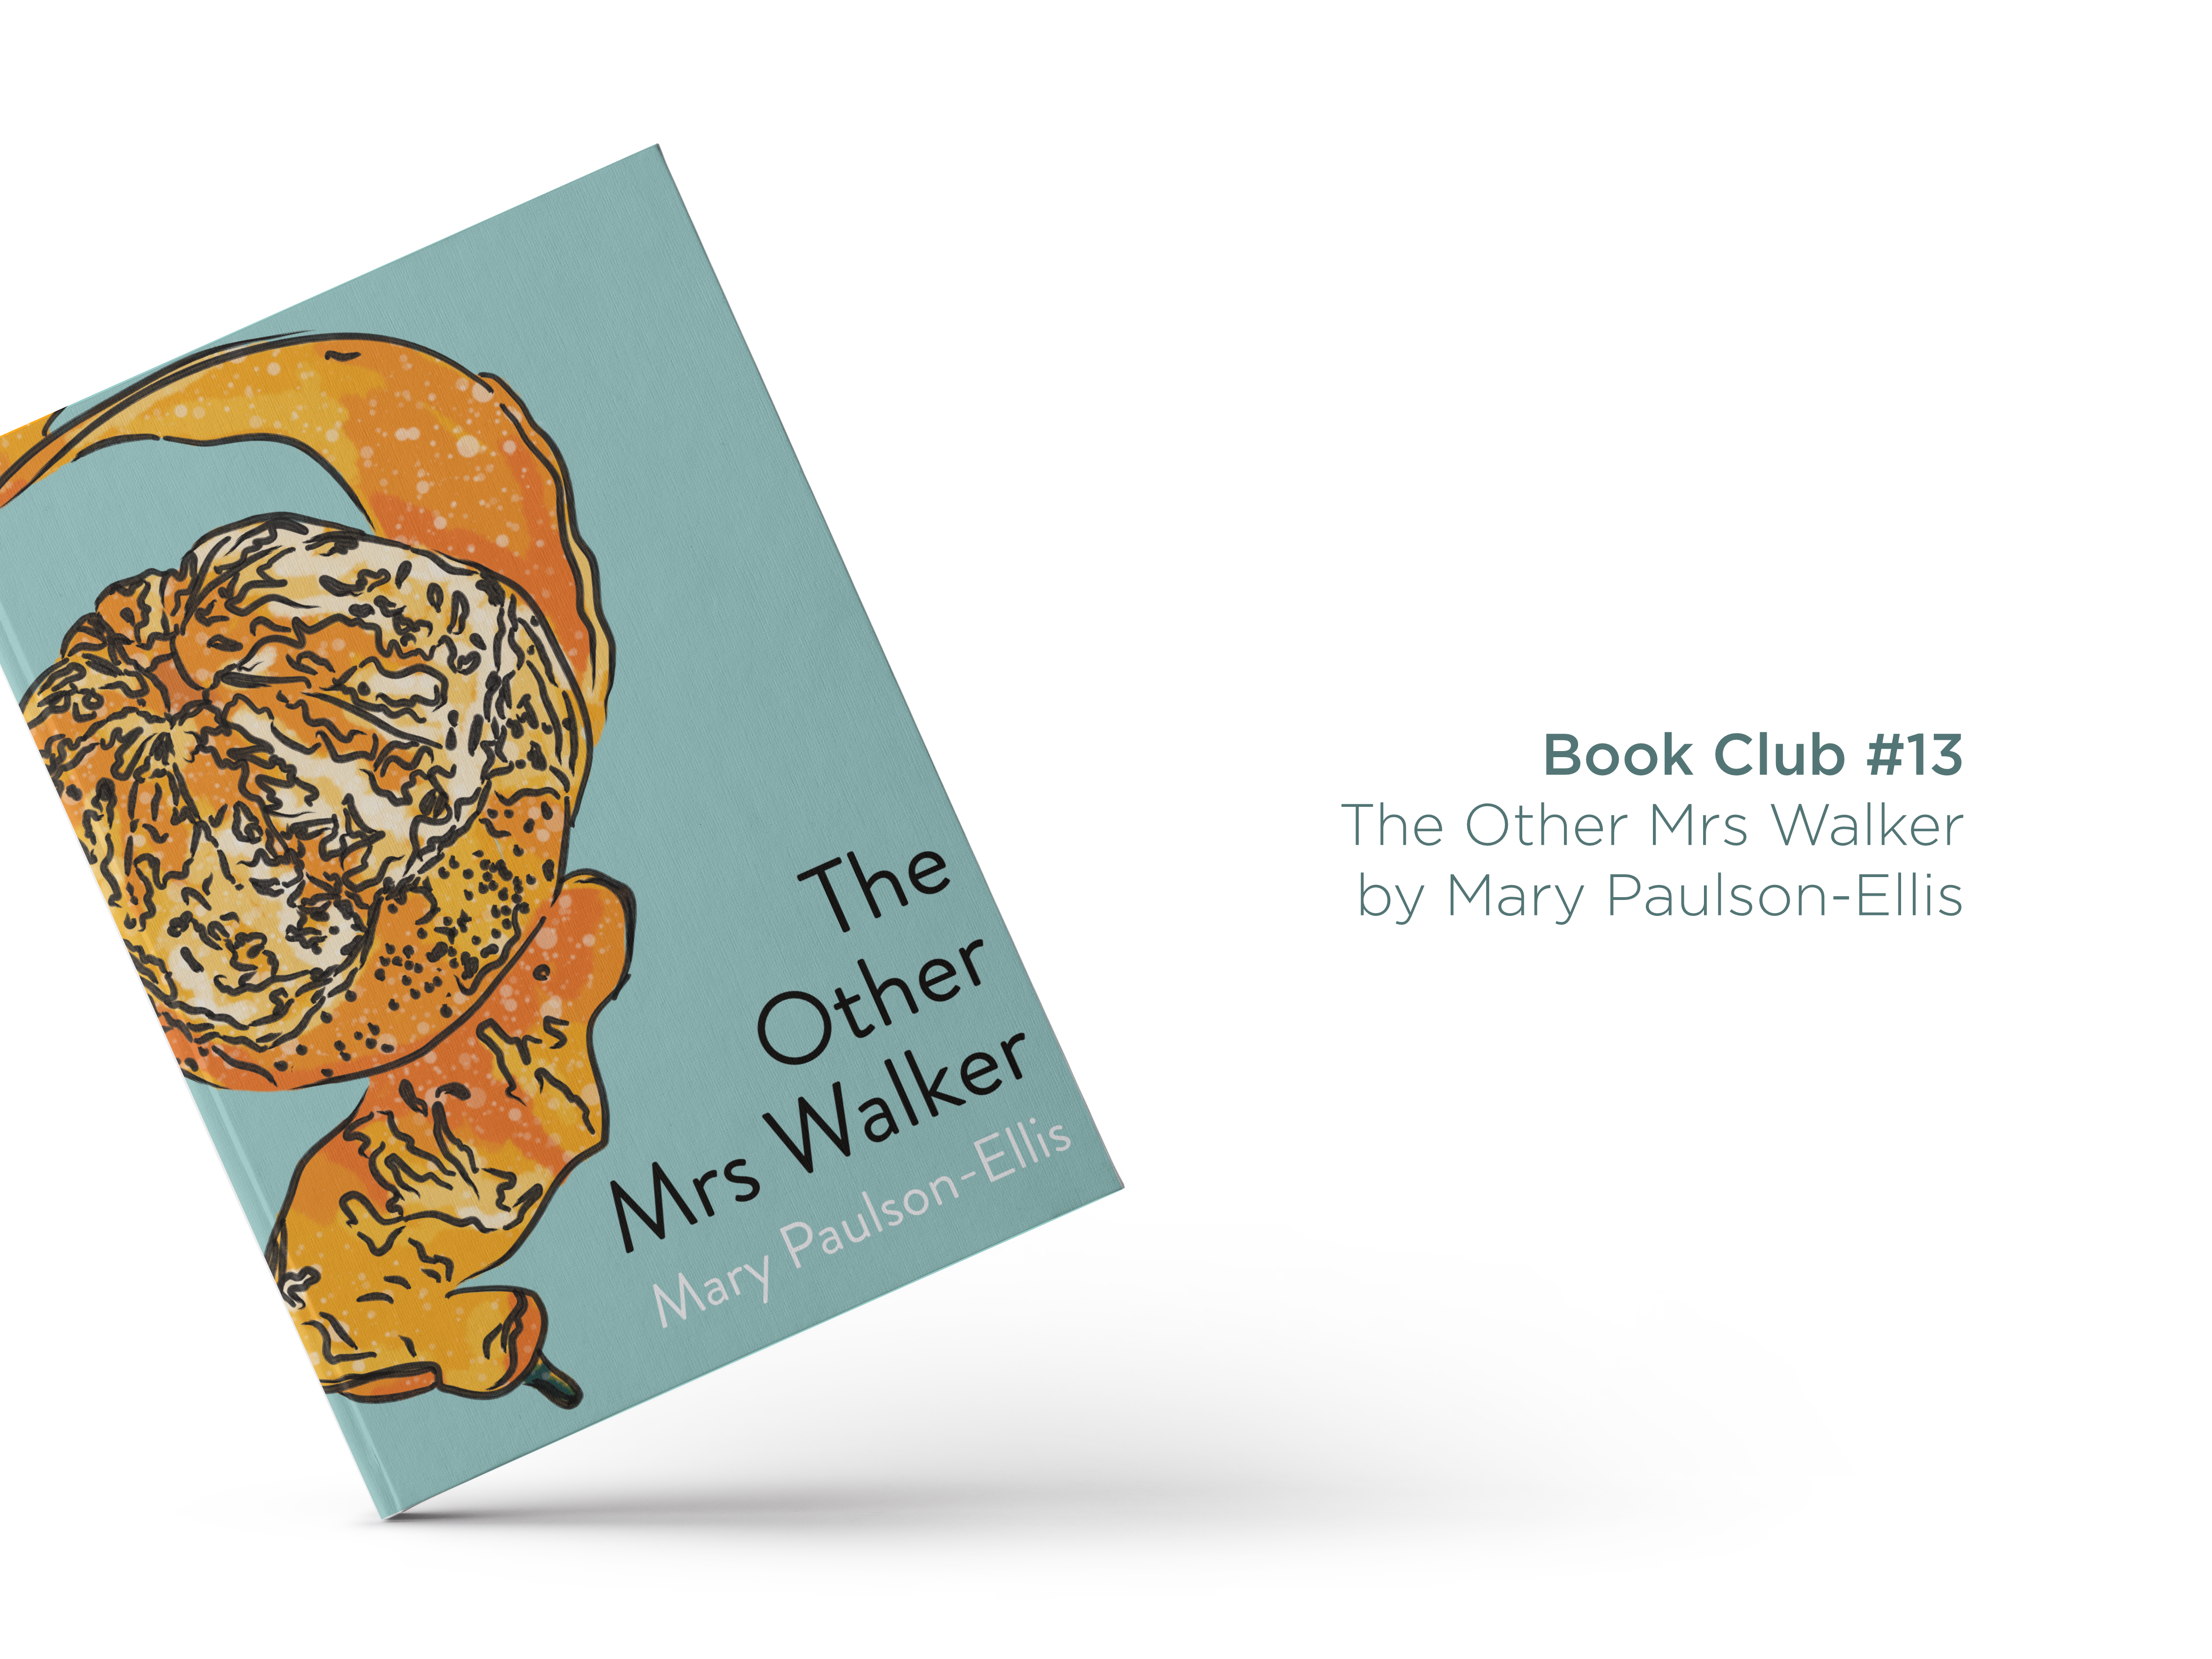 The Other Mrs Walker Alternative Cover Design and review